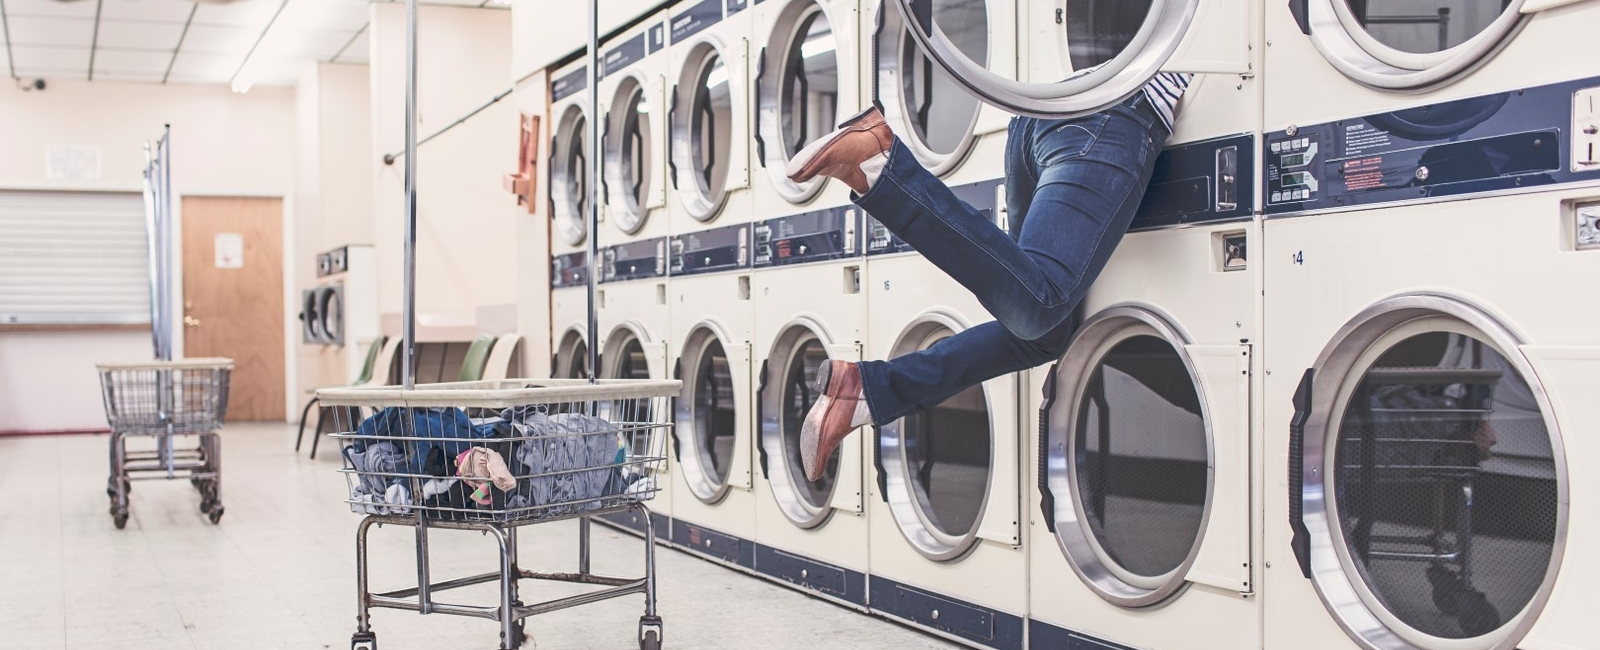 Make your washing machine smarter with Home Assistant